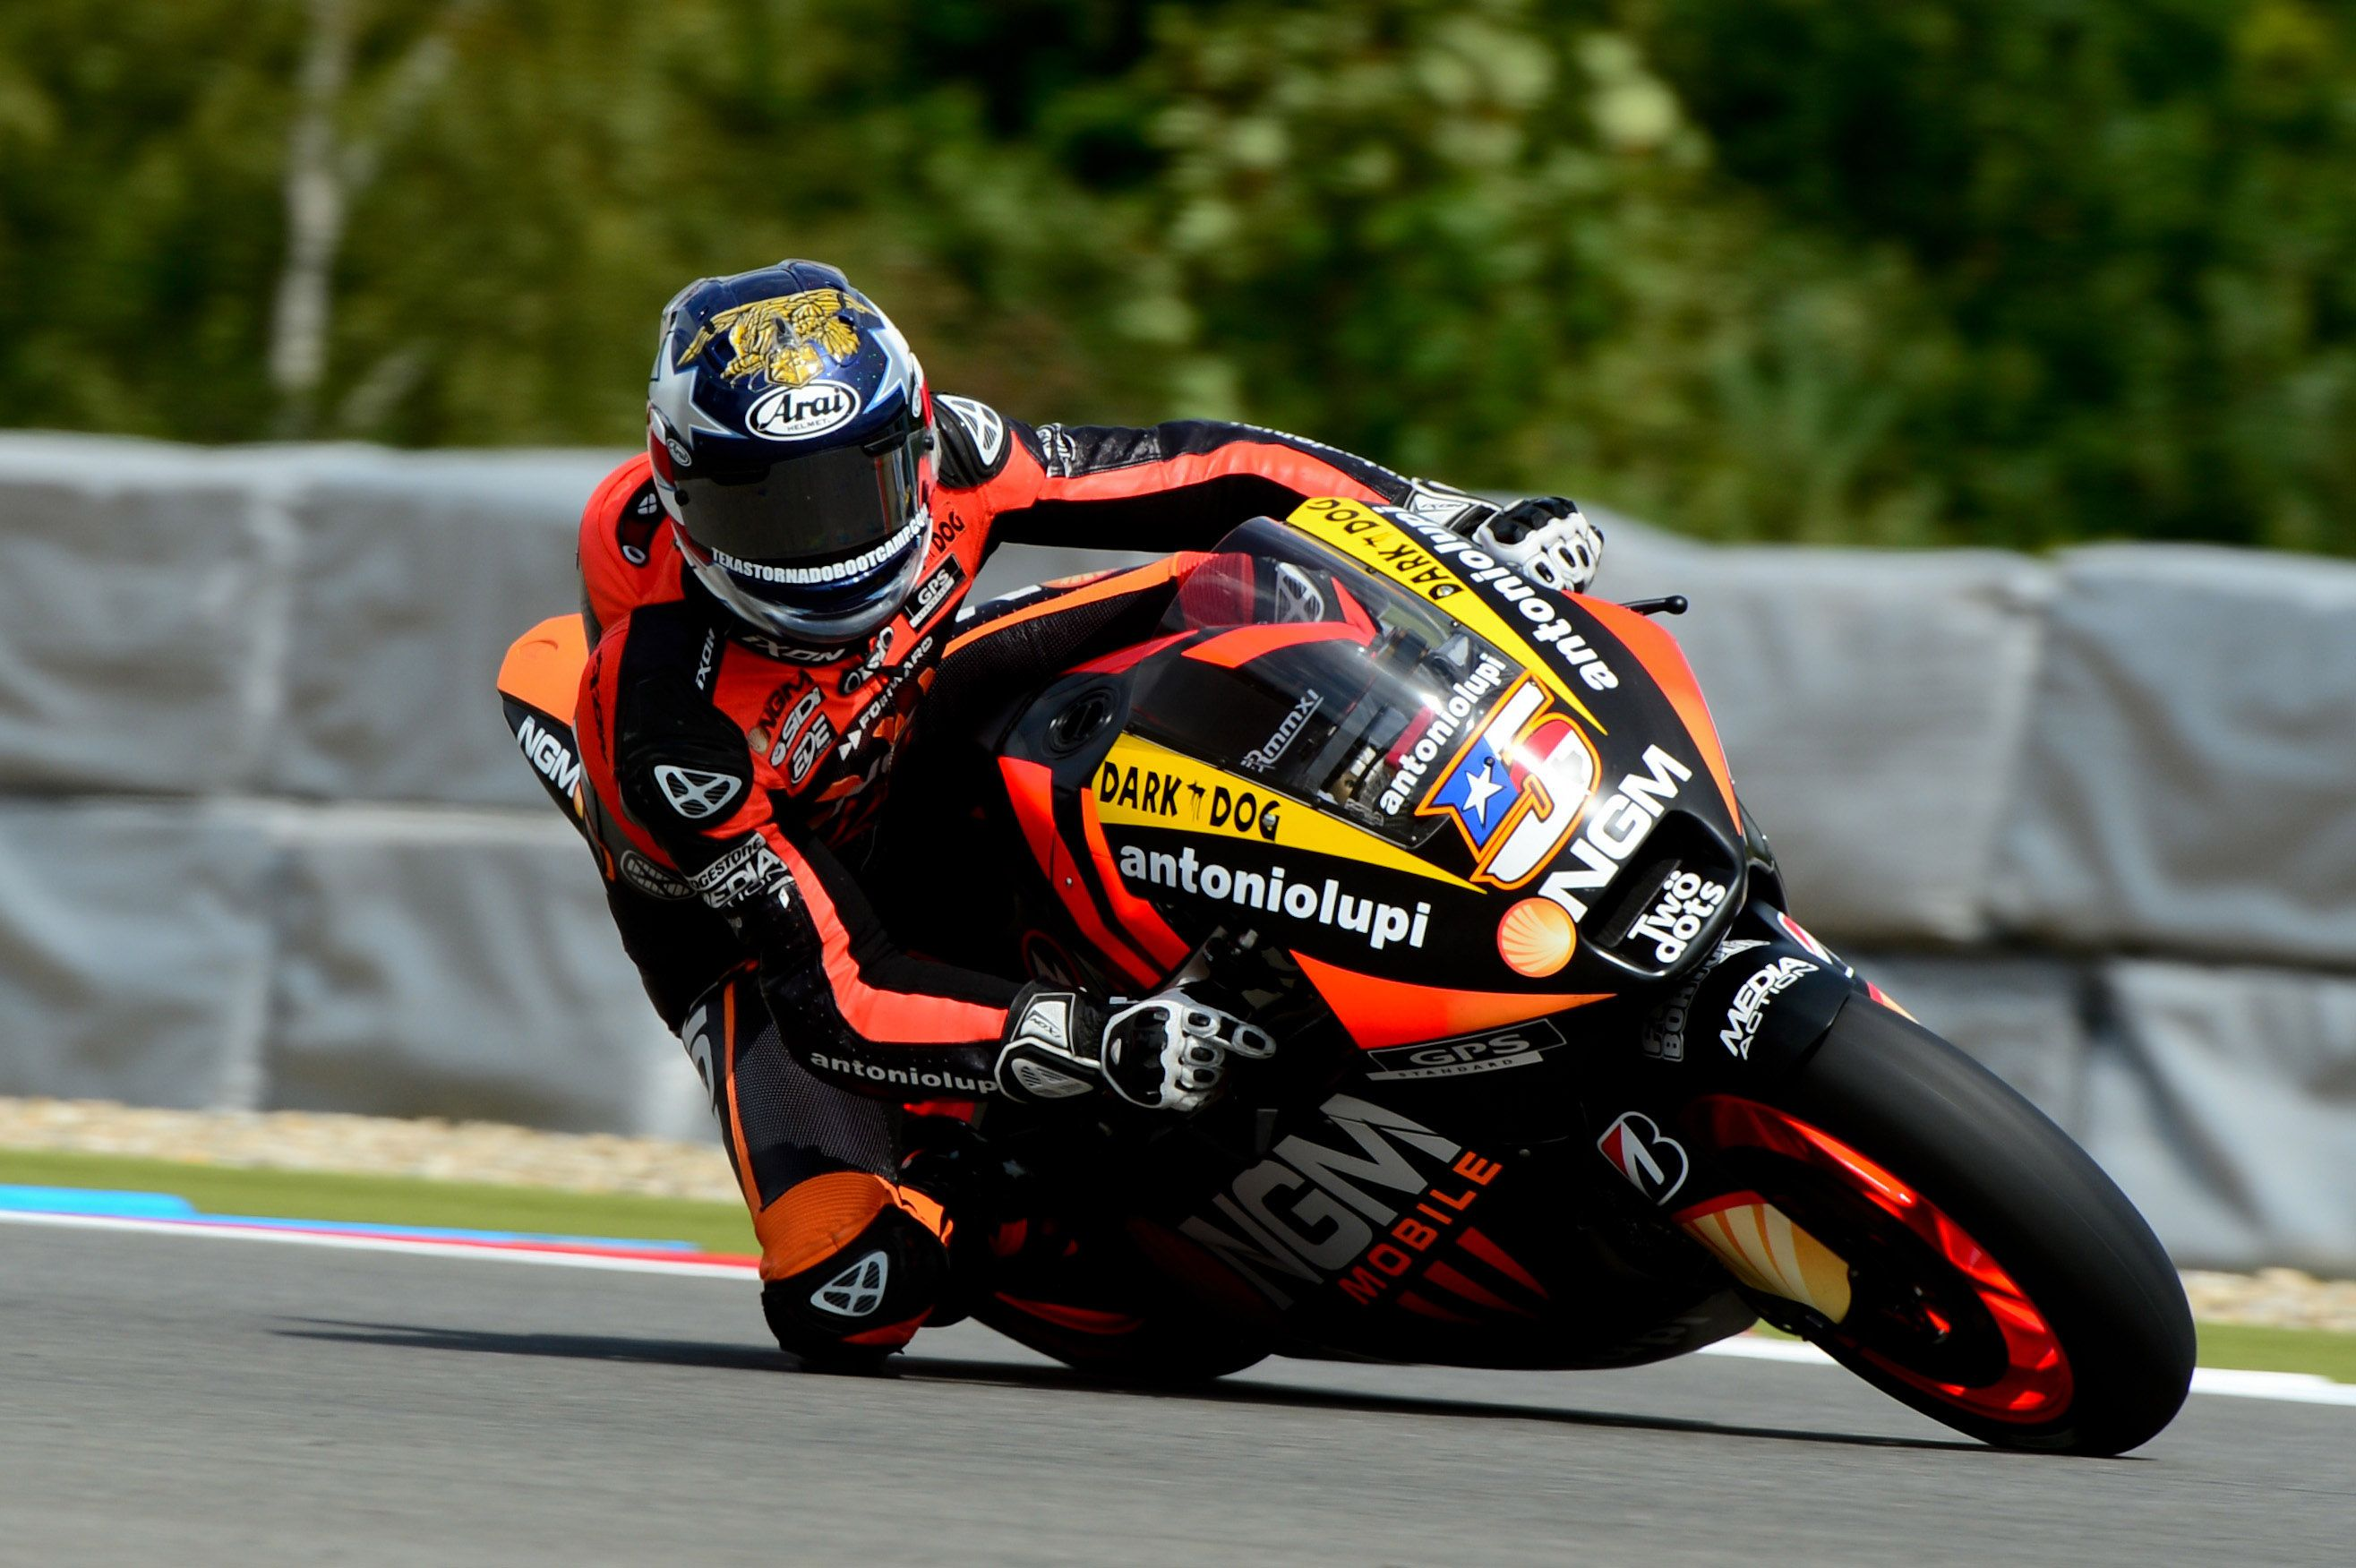 Motorcycle Racing: MotoGP-Czech Republic Grand Prix-Practice 2